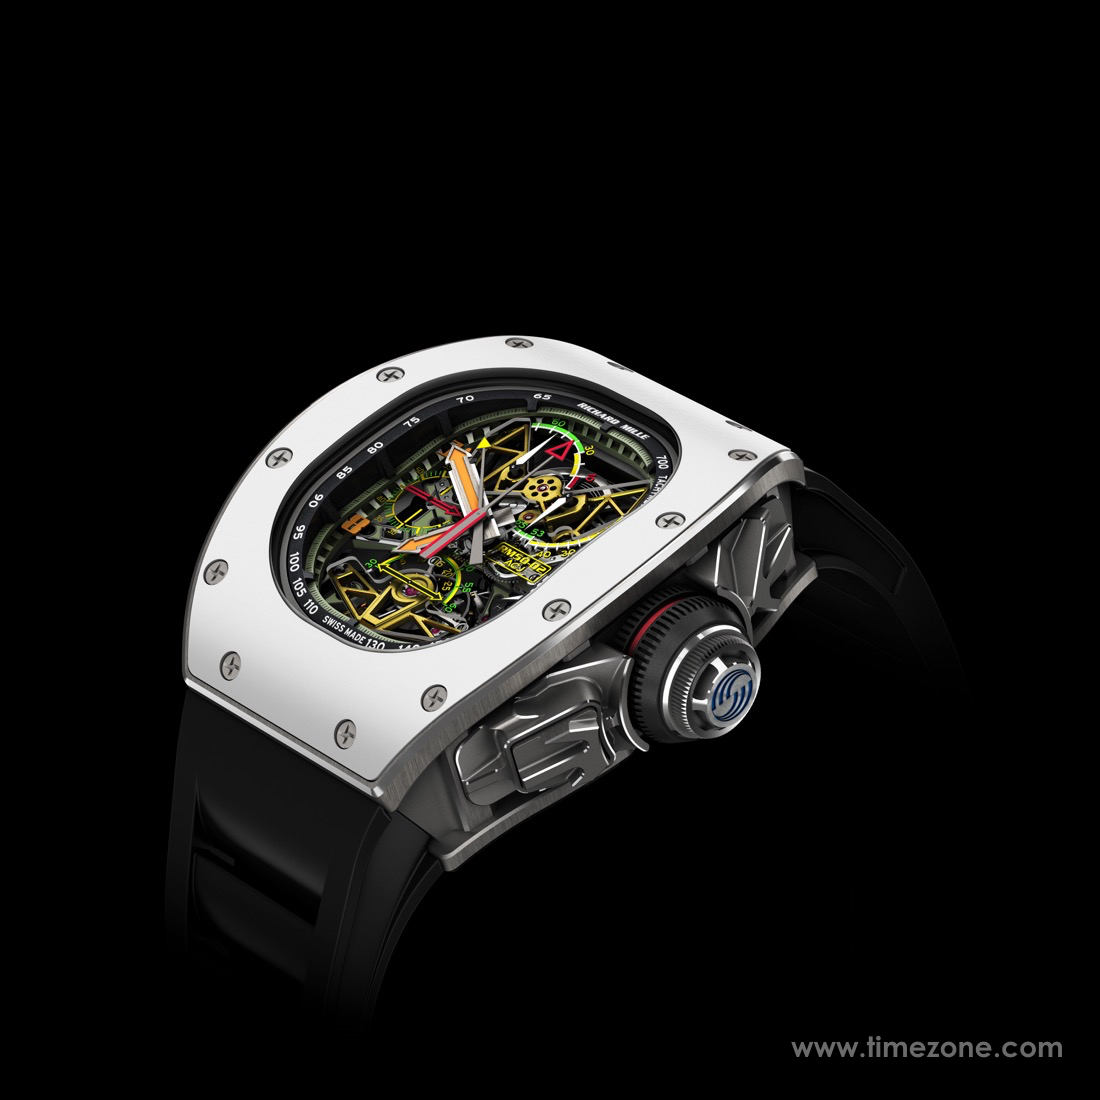 Richard Mille RM 50-02 ACJ Tourbillon Split Seconds Chronograph, Richard Mille RM 50-02 ACJ, Tourbillon Split Seconds Chronograph, Richard Mille RM 50-02, RM50-02, Richard Mille Tourbillon Split Seconds Chronograph, Richard Mille ACJ, Richard Mille Airbus